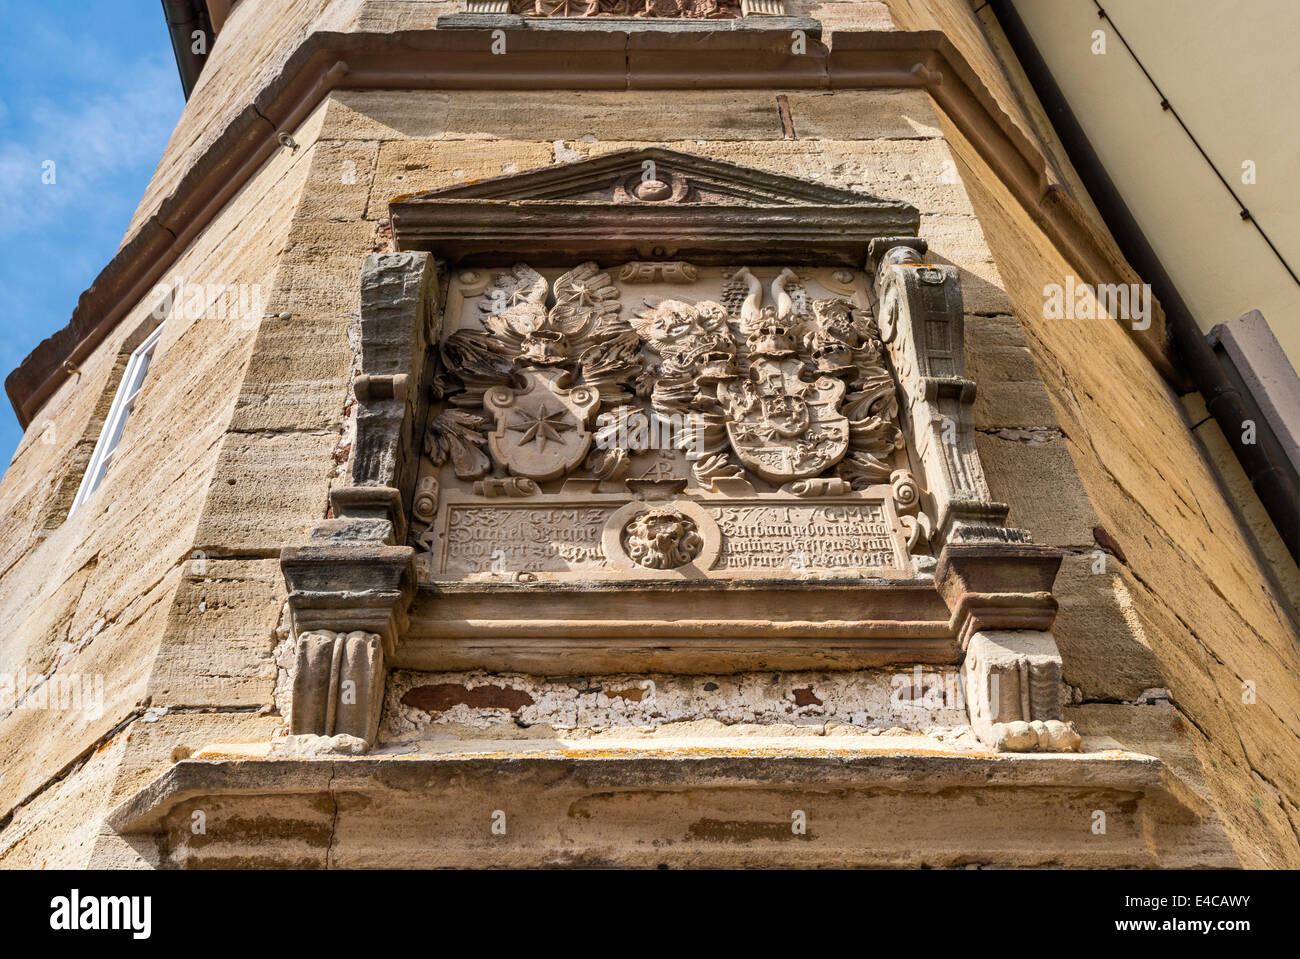 Sandstone cartouche with coat of arms, dated 1577, at Achteckiger Treppenturm, tower at Schloss Waldeck, Hessen, - Stock Image